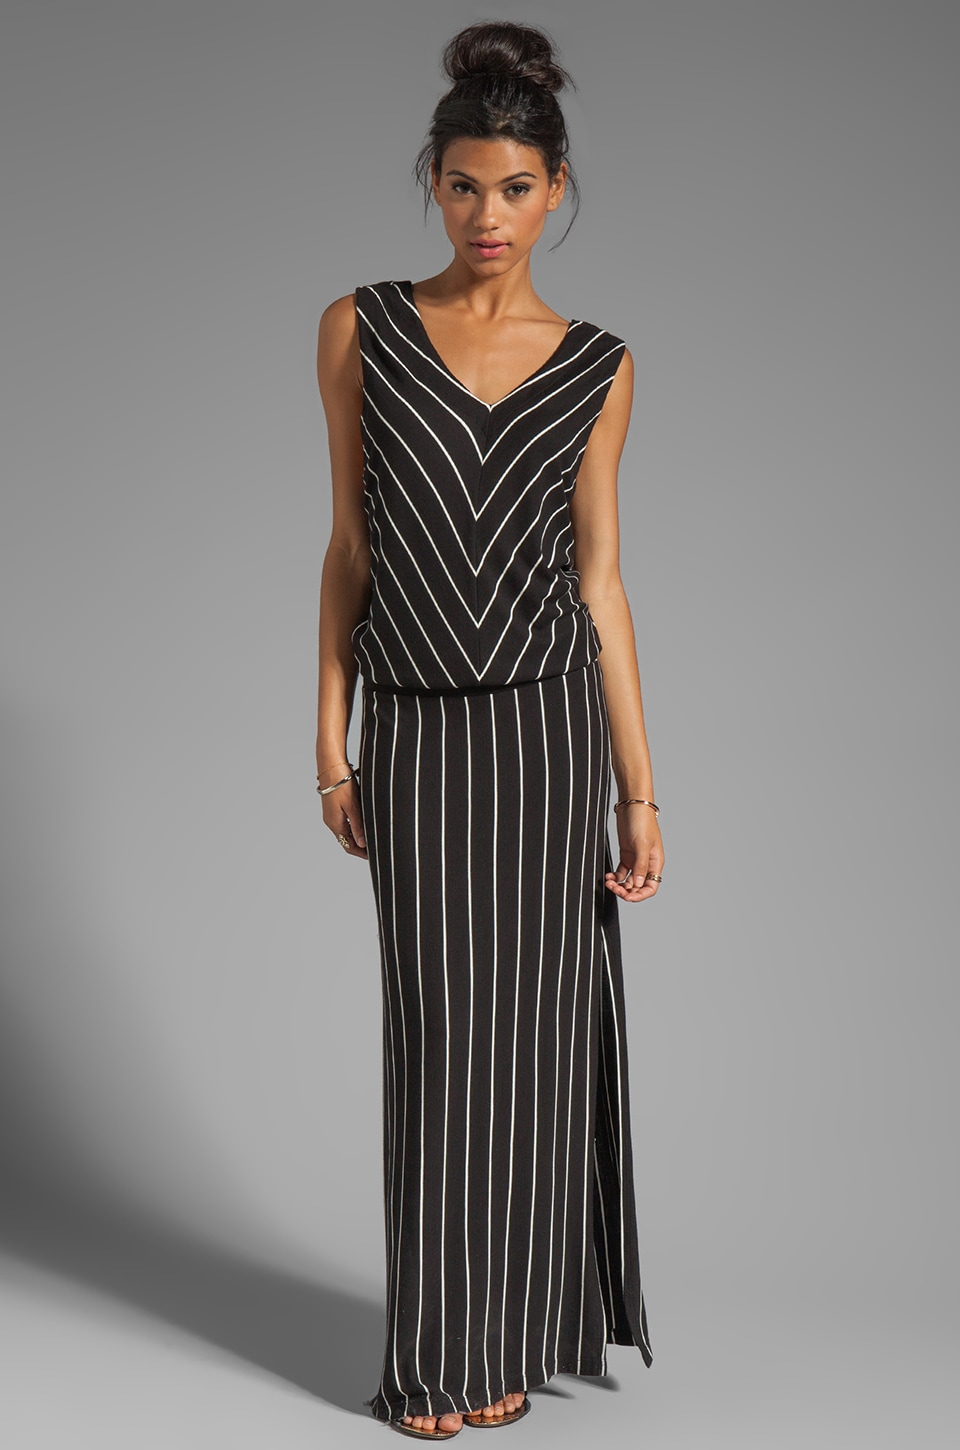 Heather Rib Stripe Double V Maxi Tank Dress in Black/White